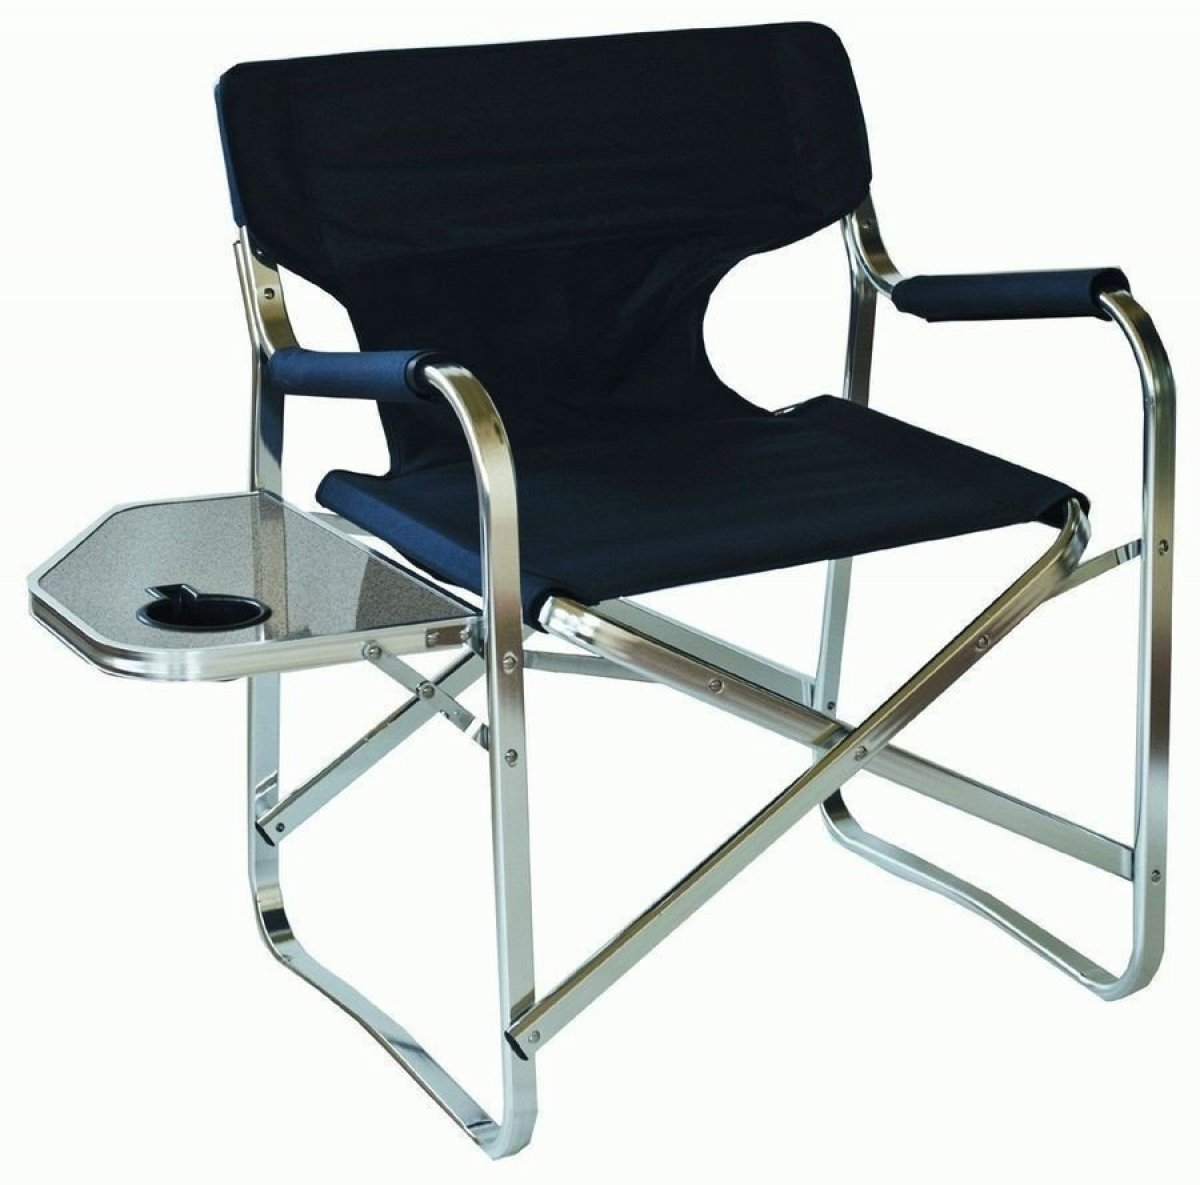 Supex aluminium Directors chair- with foldaway drink table